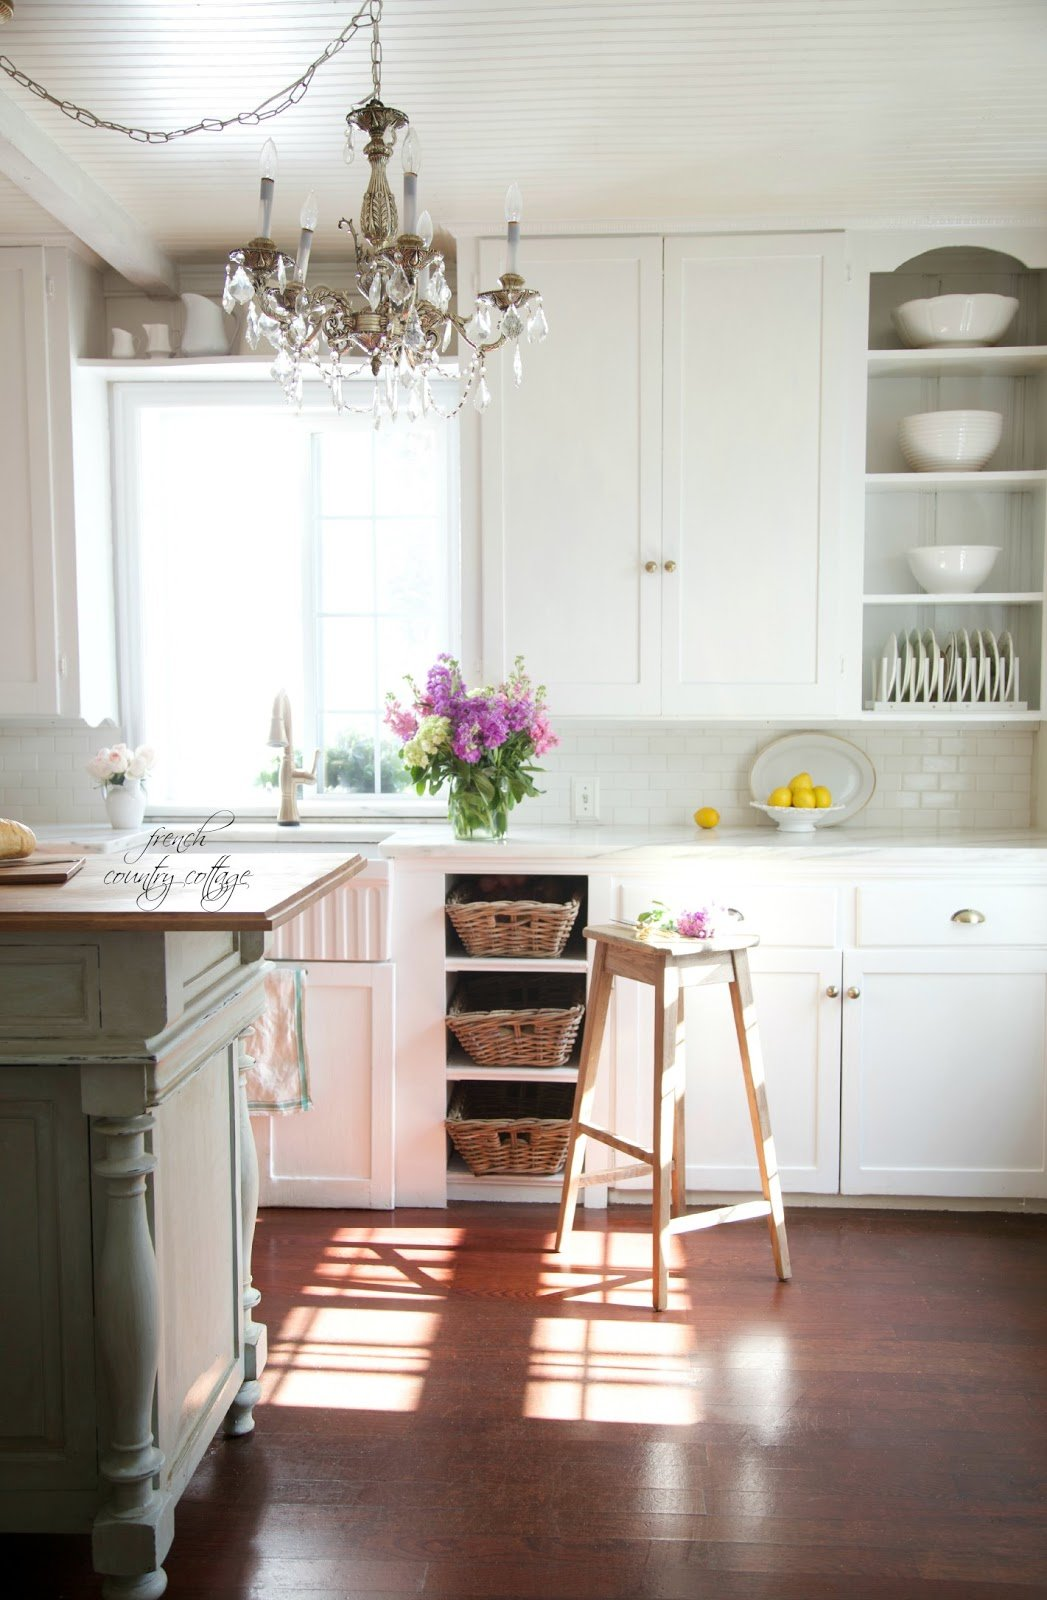 5 Beautiful And Affordable Updates To Make In Your Kitchen